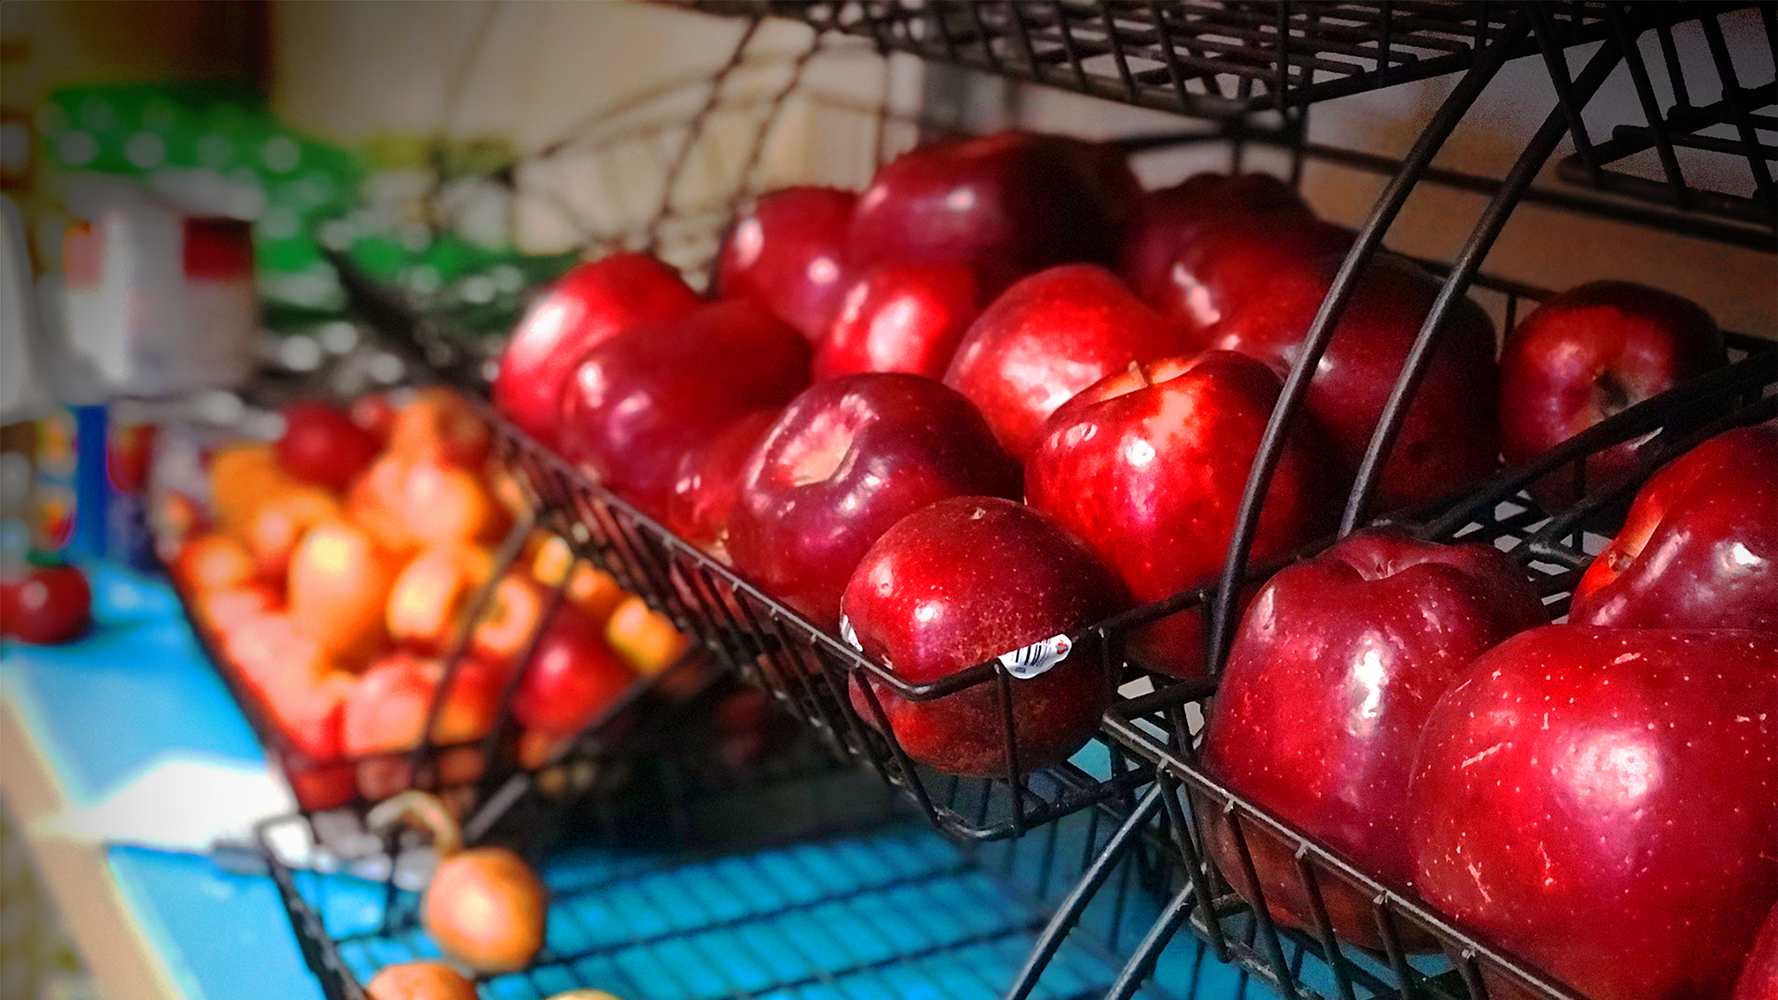 A basket of apples in a food shelf